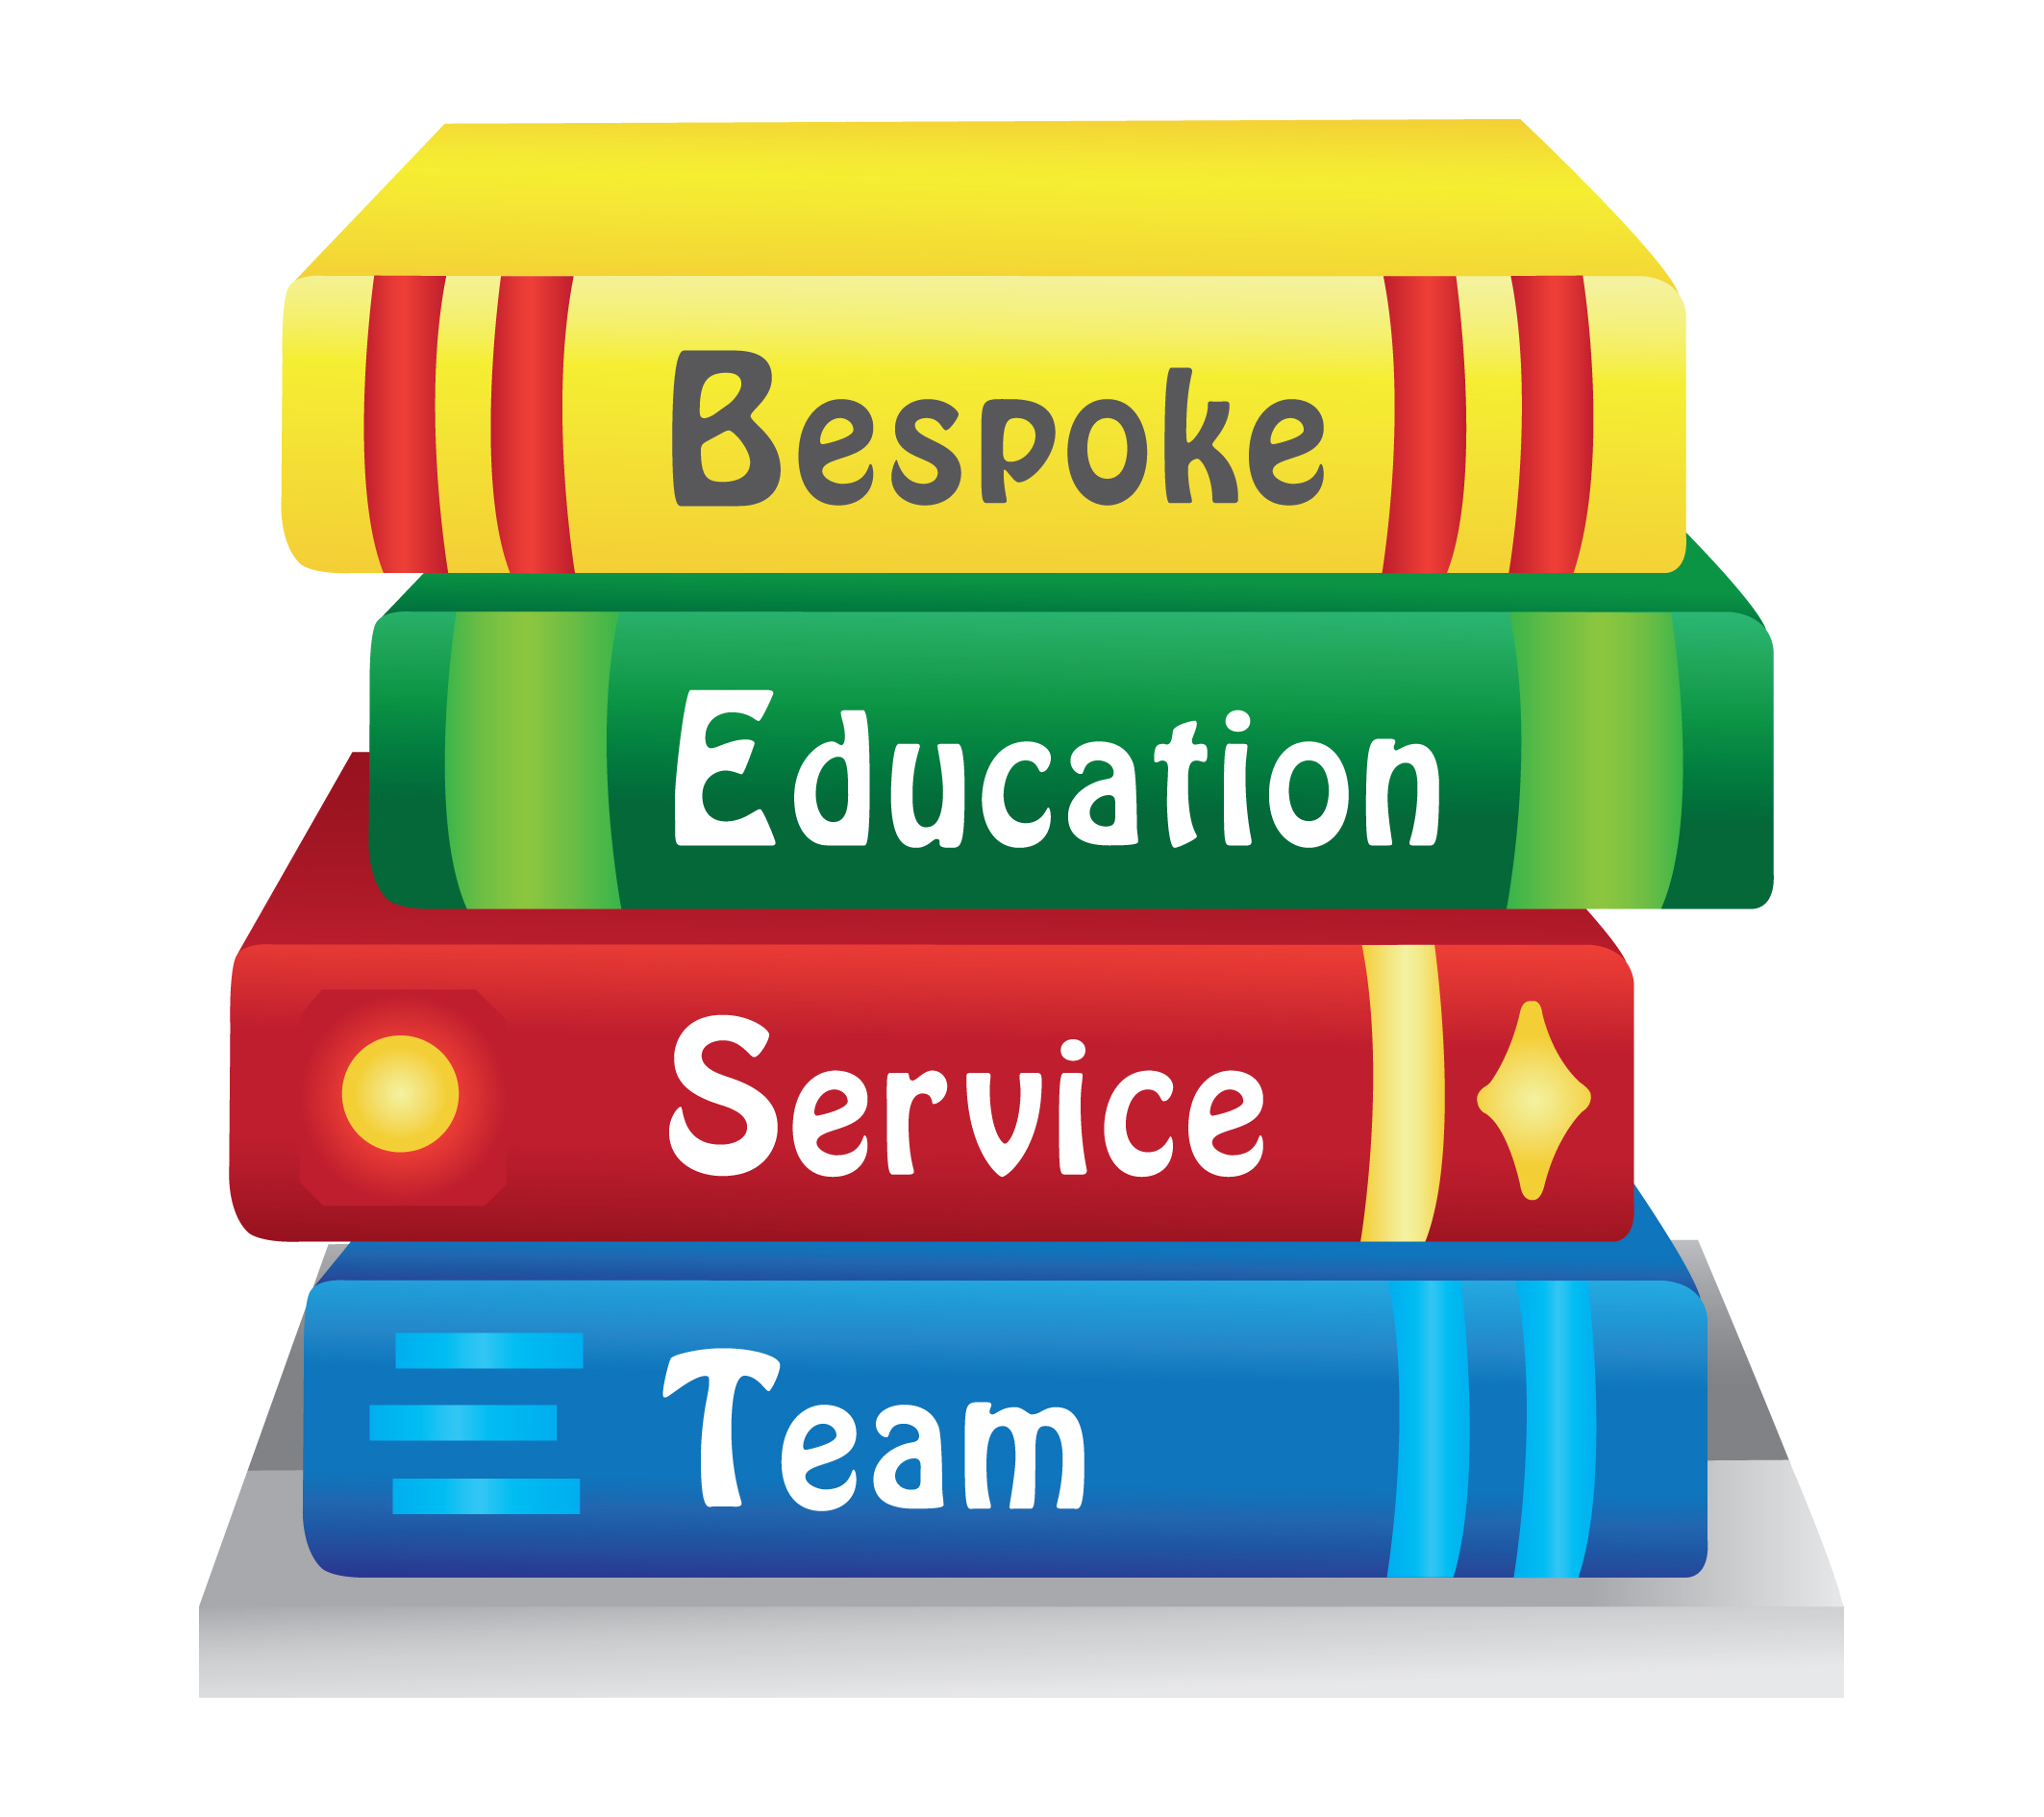 Bespoke Education Service - Best Wales